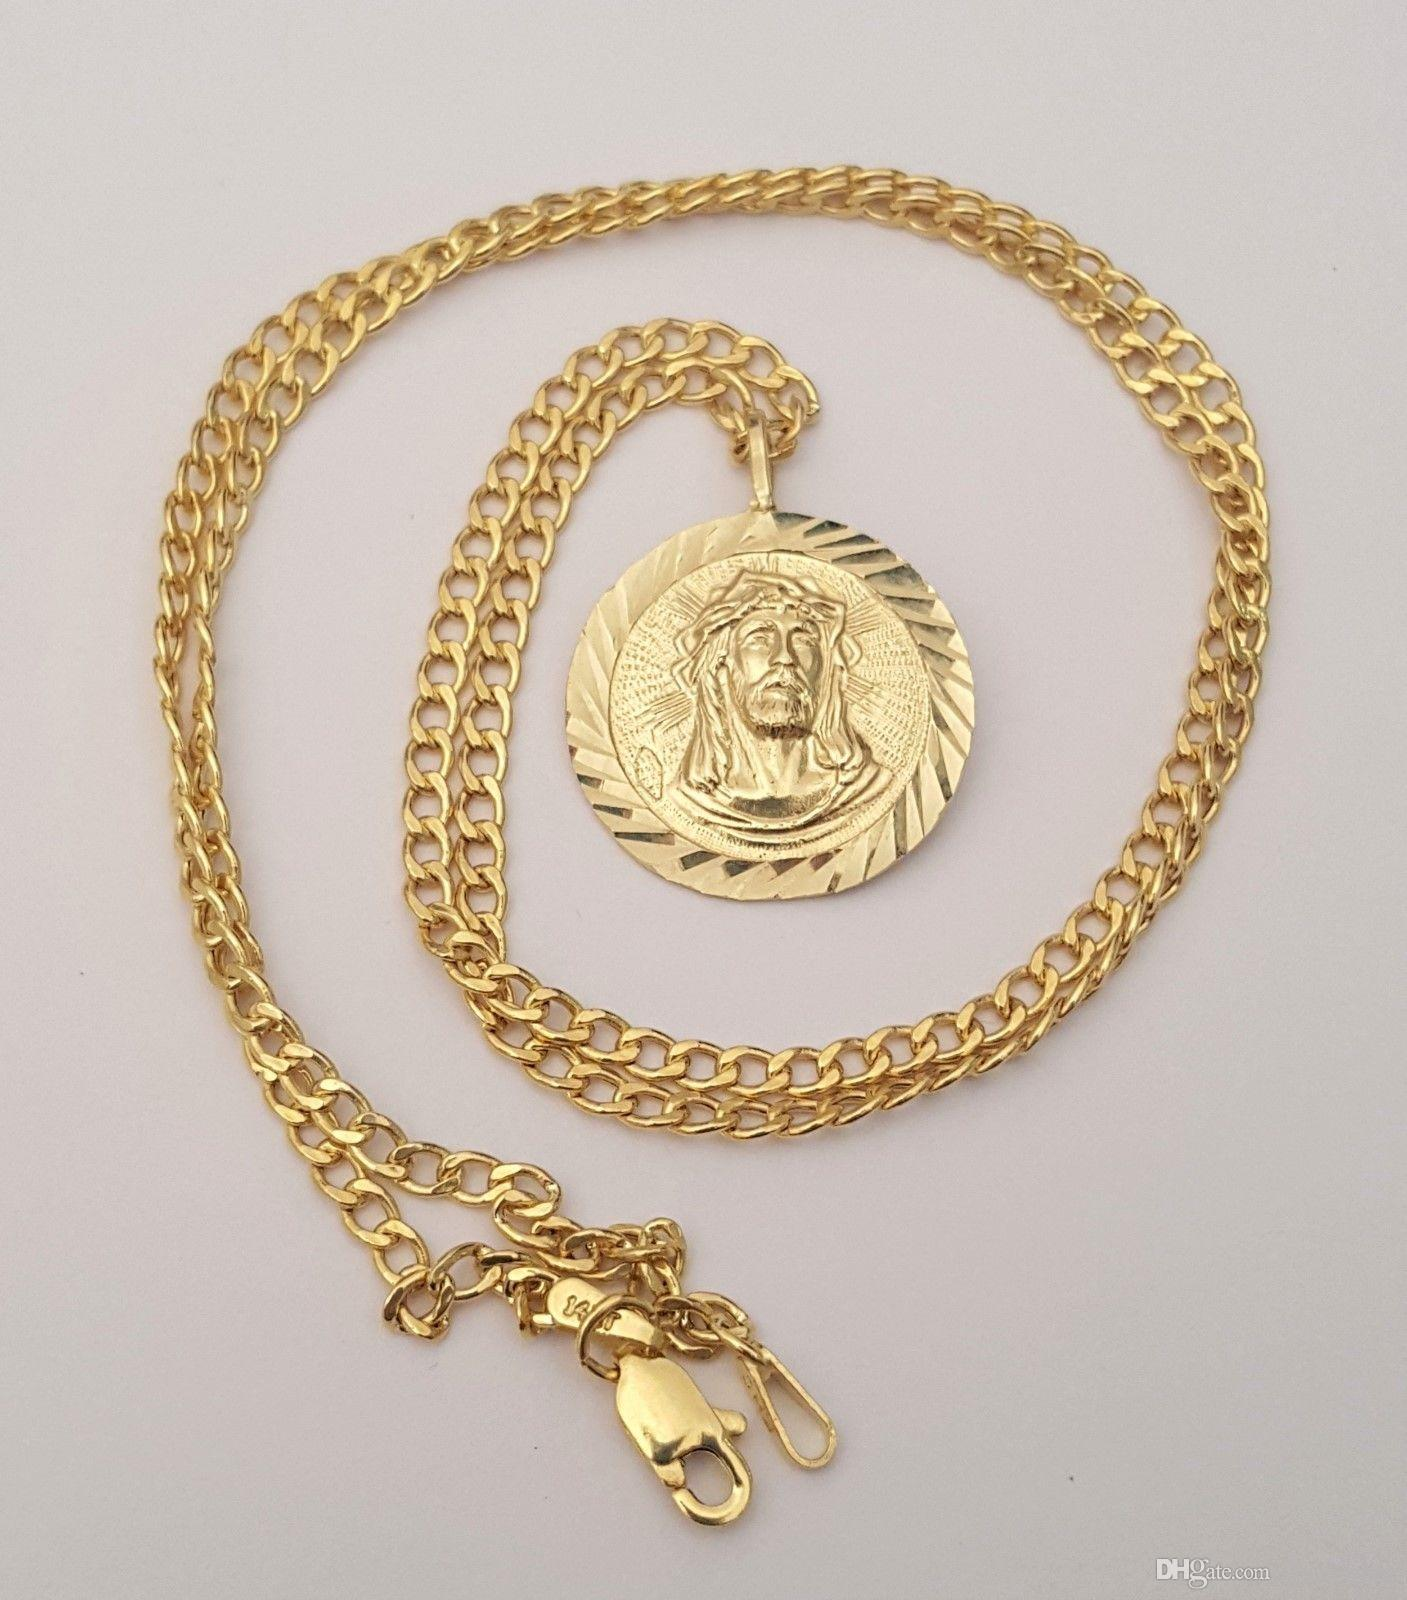 gallery pendant lyst dominique product necklace chain diamond gold jewelry cohen medallion